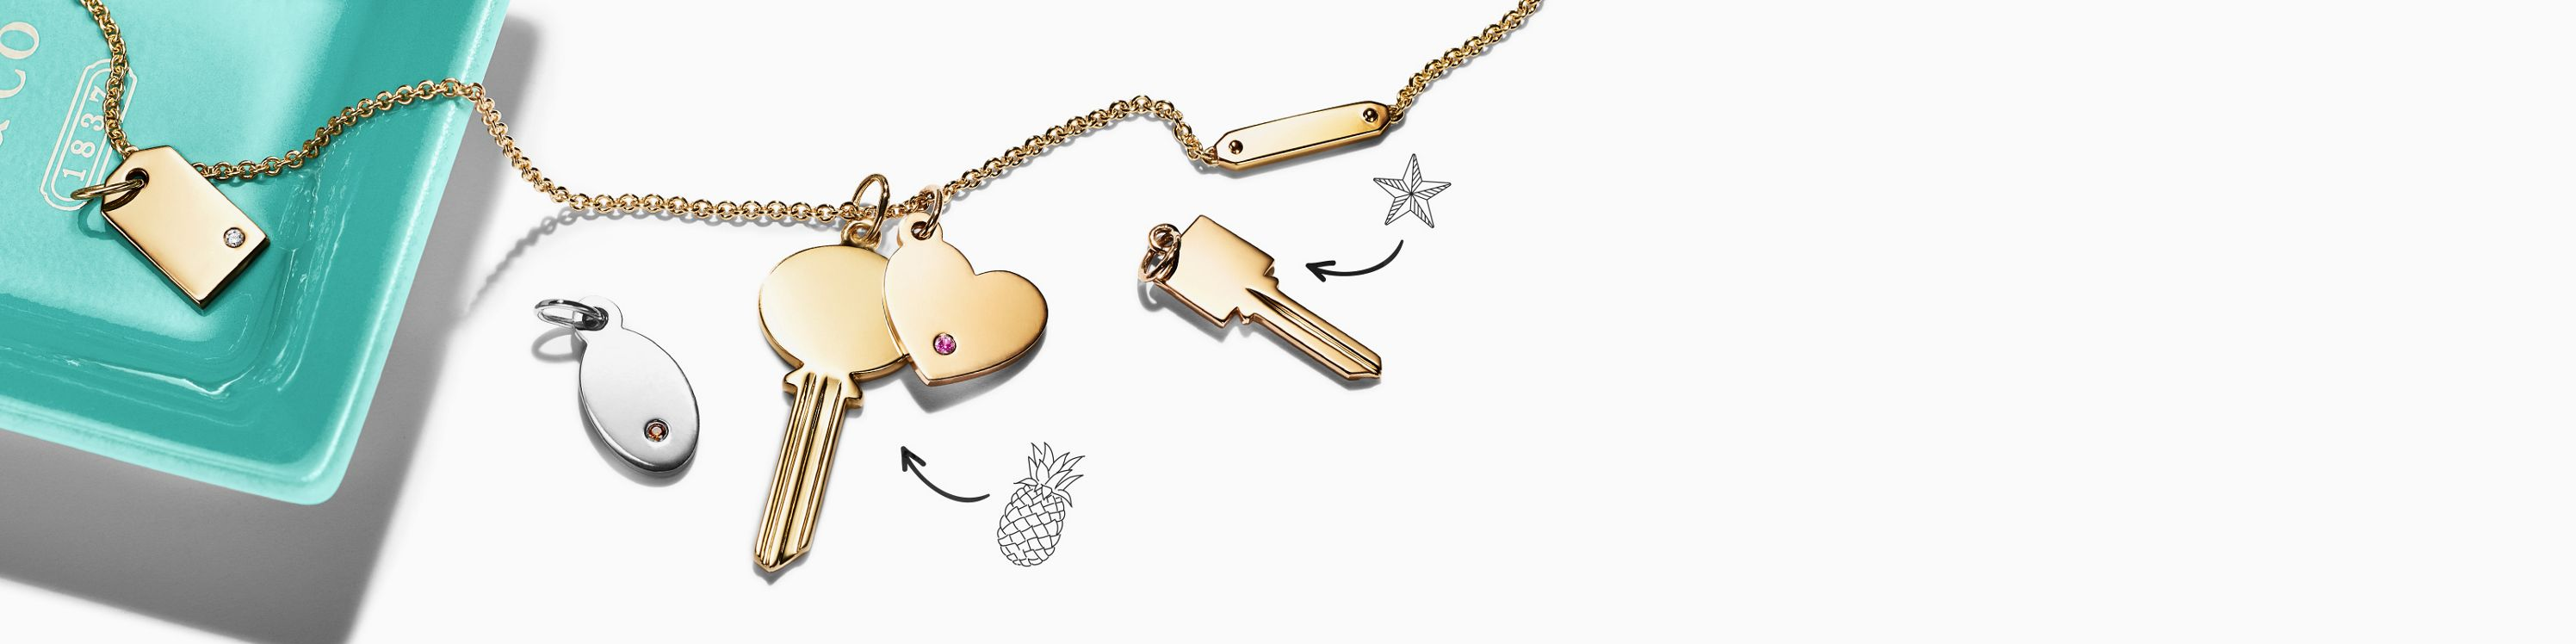 Tiffany & Co Engrave Jewelry